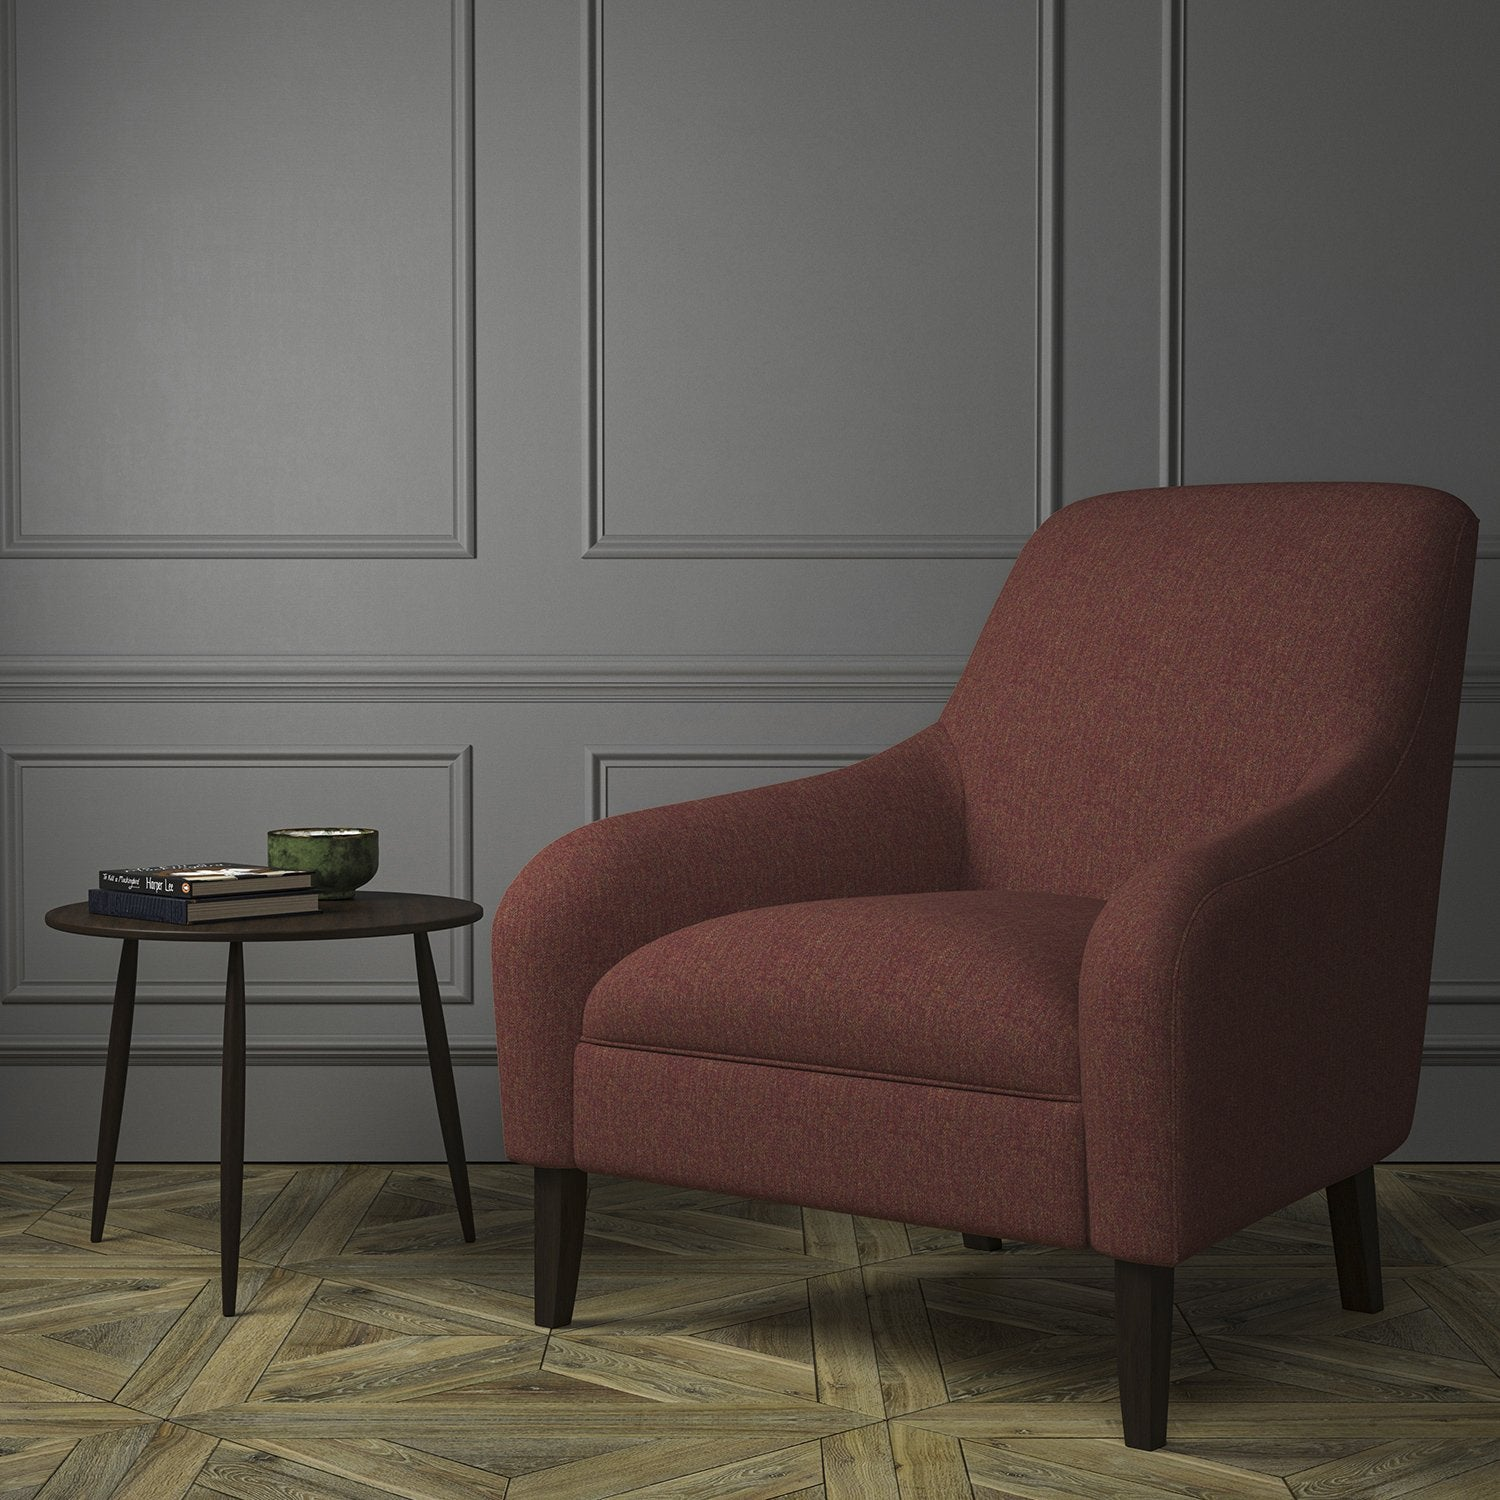 Chair upholstered in a dark red Scottish wool herringbone fabric